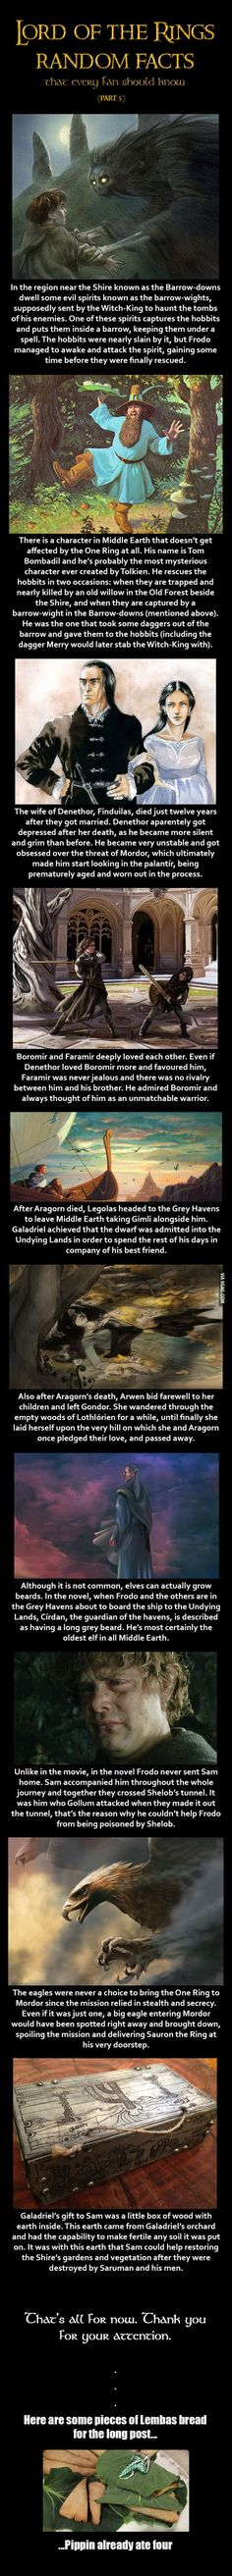 Here are some Lord of the Rings random facts (Part 5):